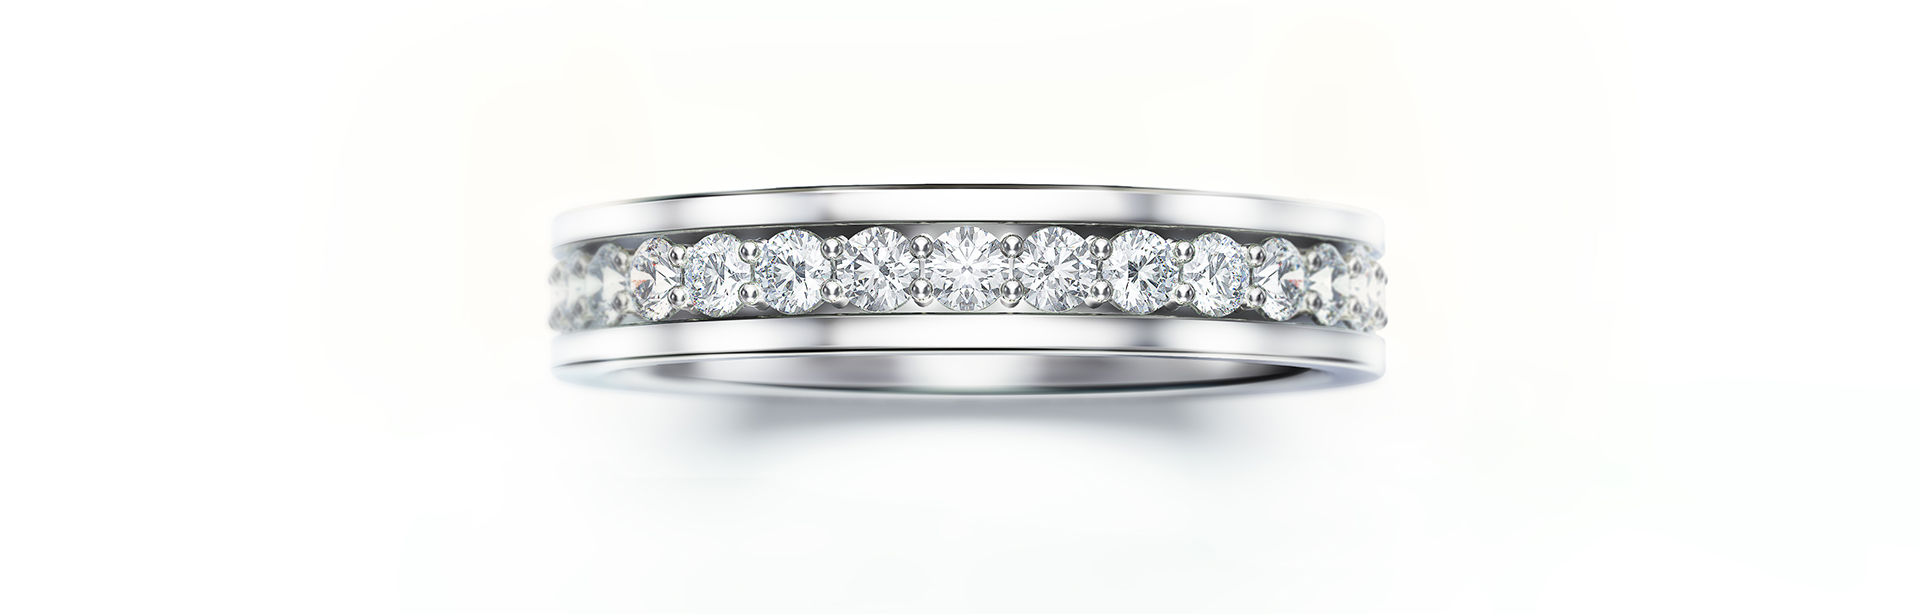 Diamond Ring Jewellery Rendering